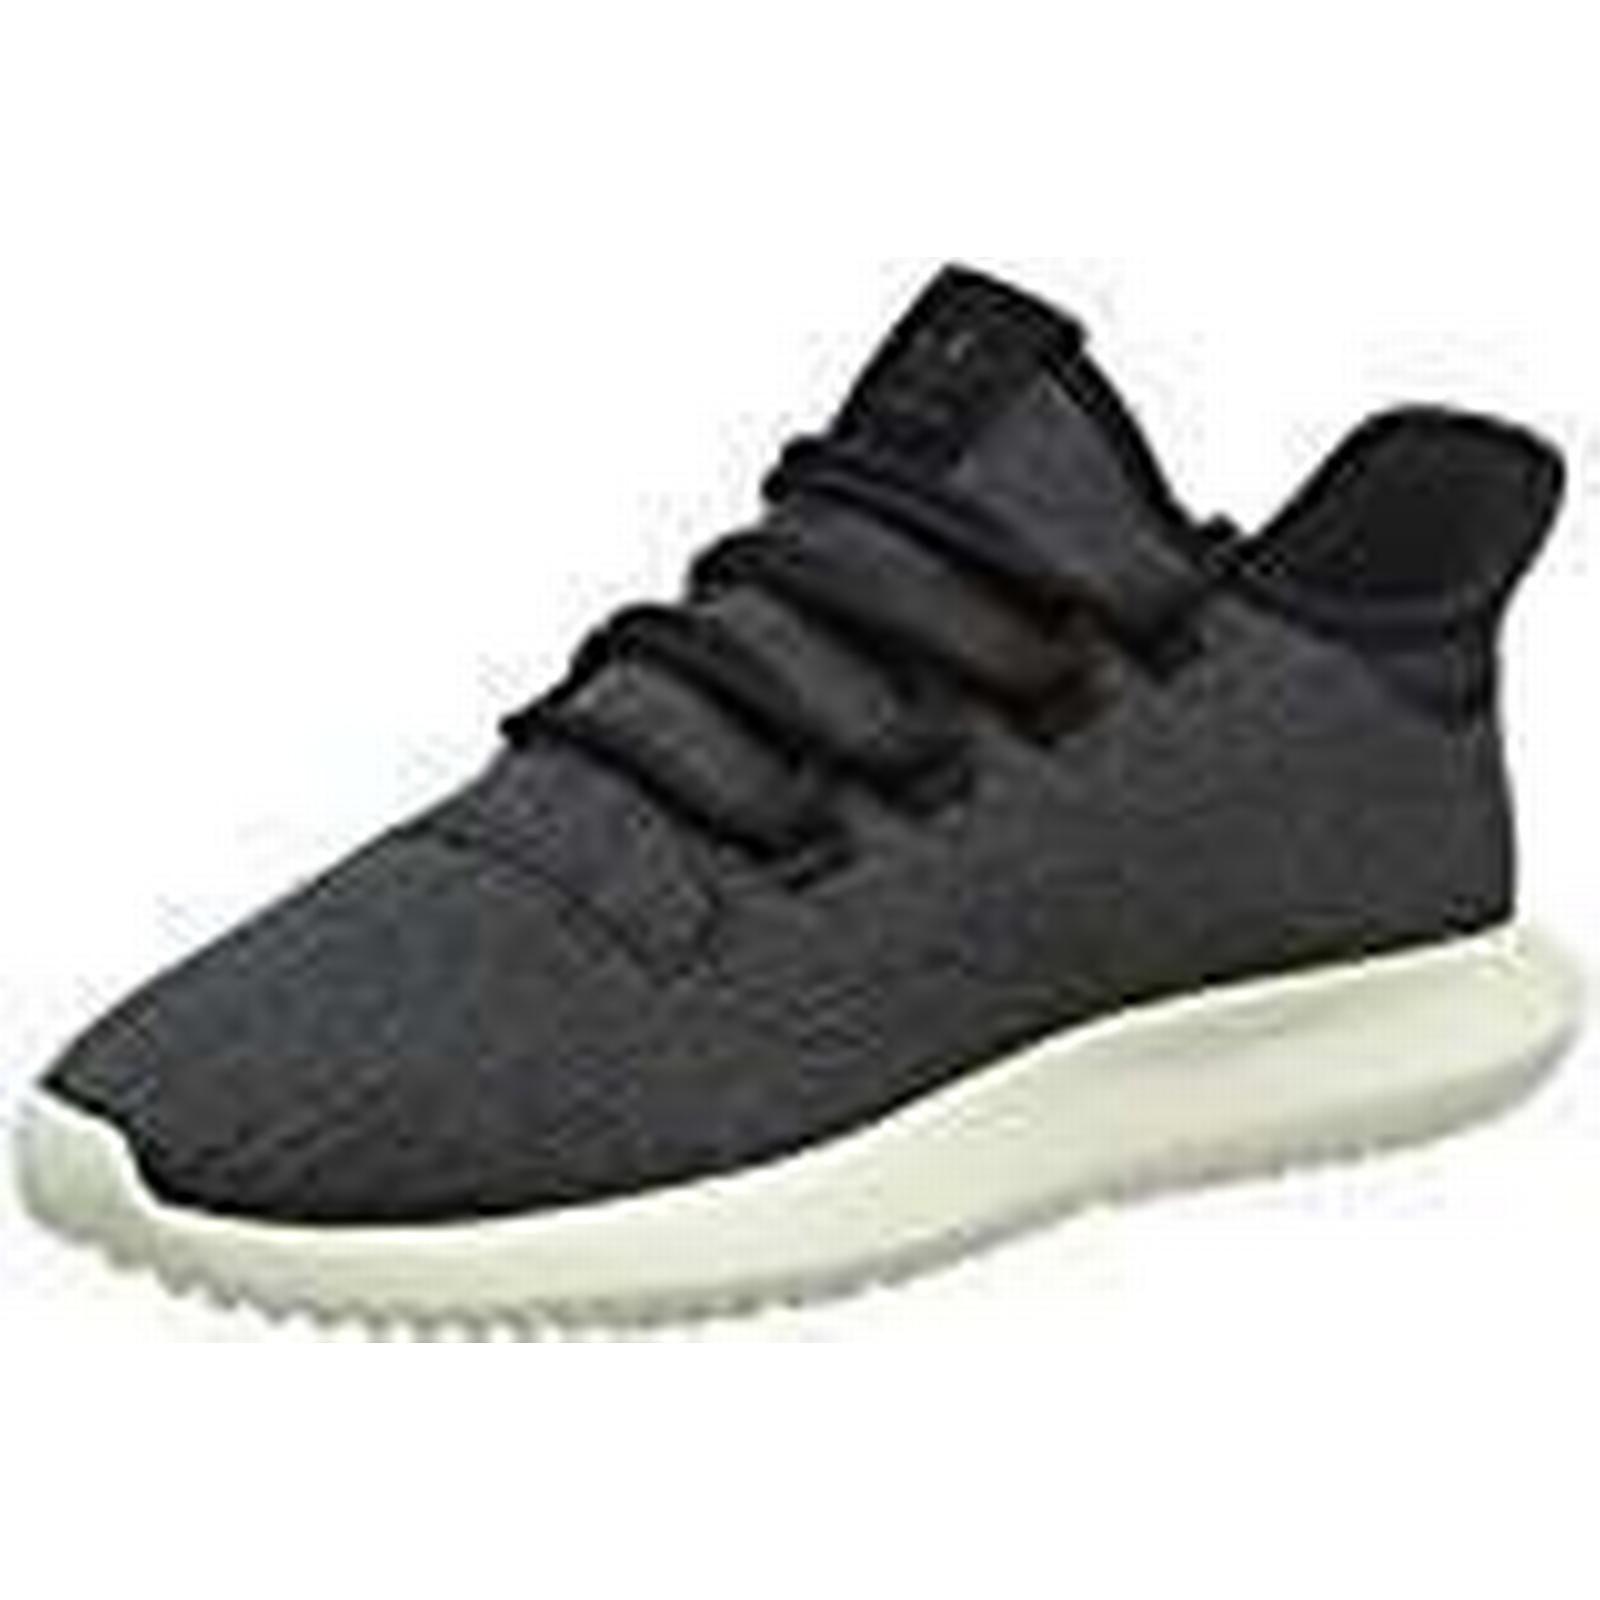 Adidas Fitness Women''s Tubular Shadow W Fitness Adidas Shoes, Black Negbas/Casbla 000, 5 UK 5 UK 4a133b